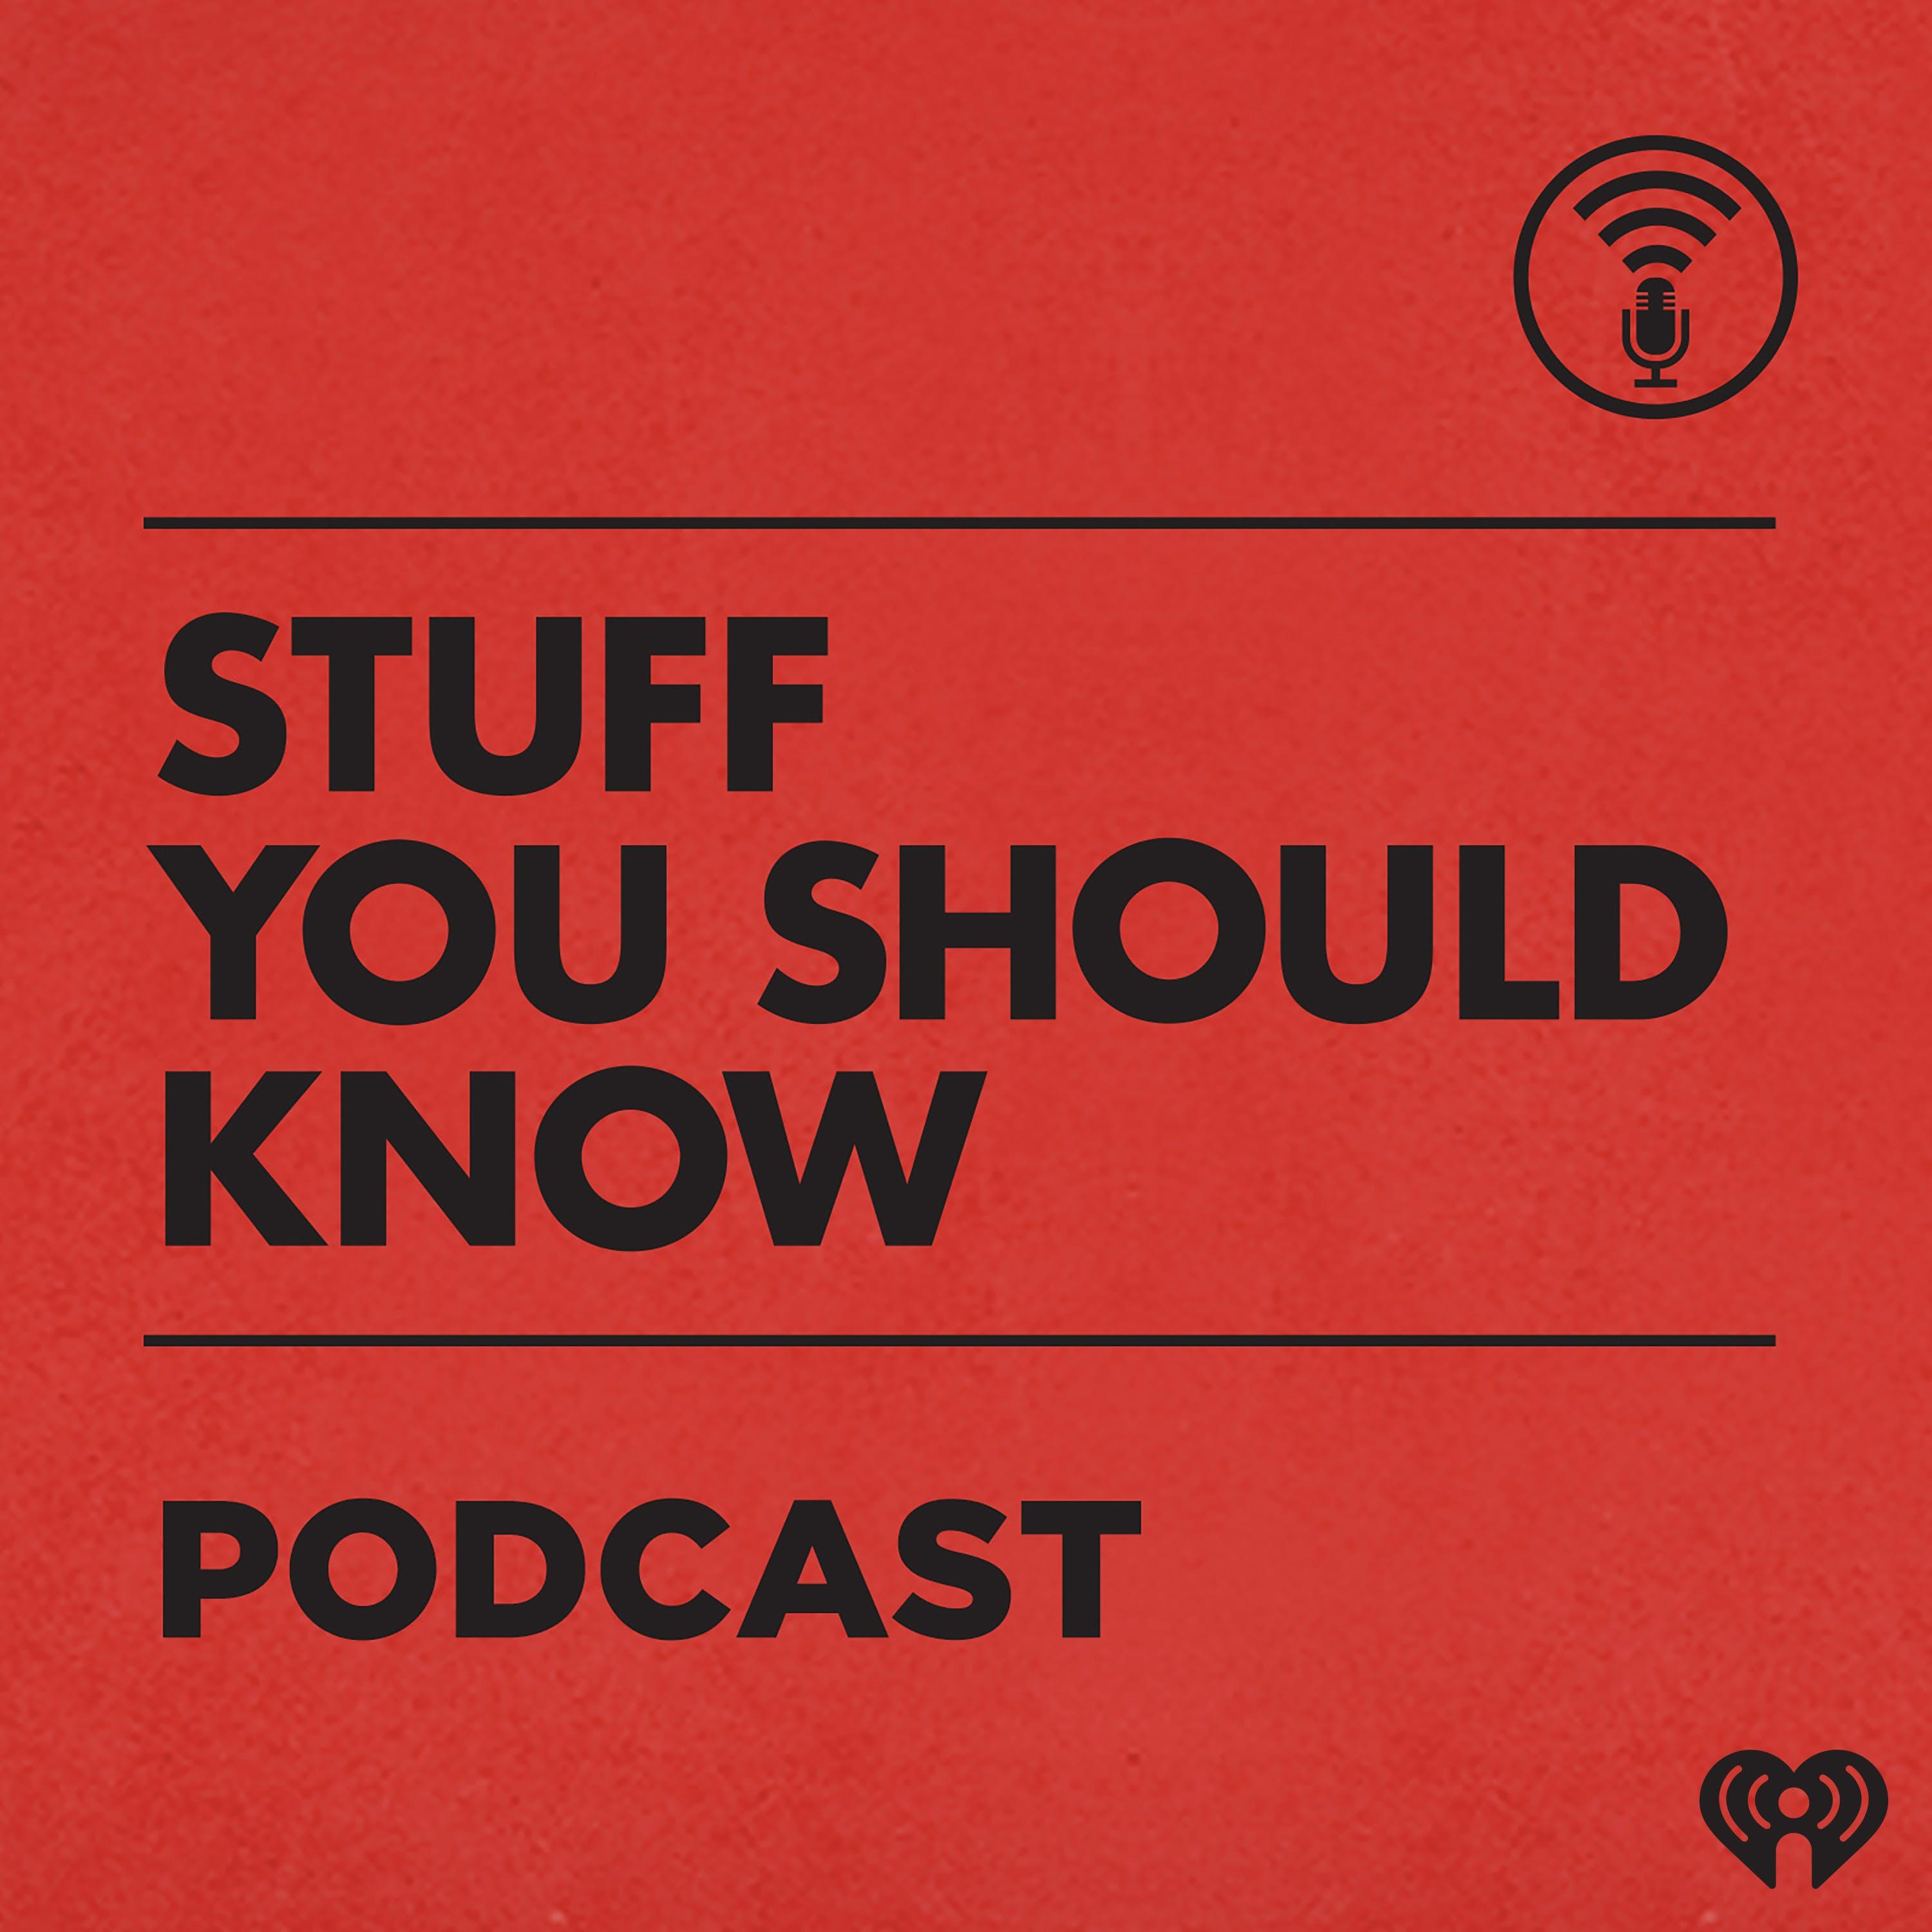 Listen to the Stuff You Should Know Episode - How the Concorde Worked on iHeartRadio | iHeartRadio